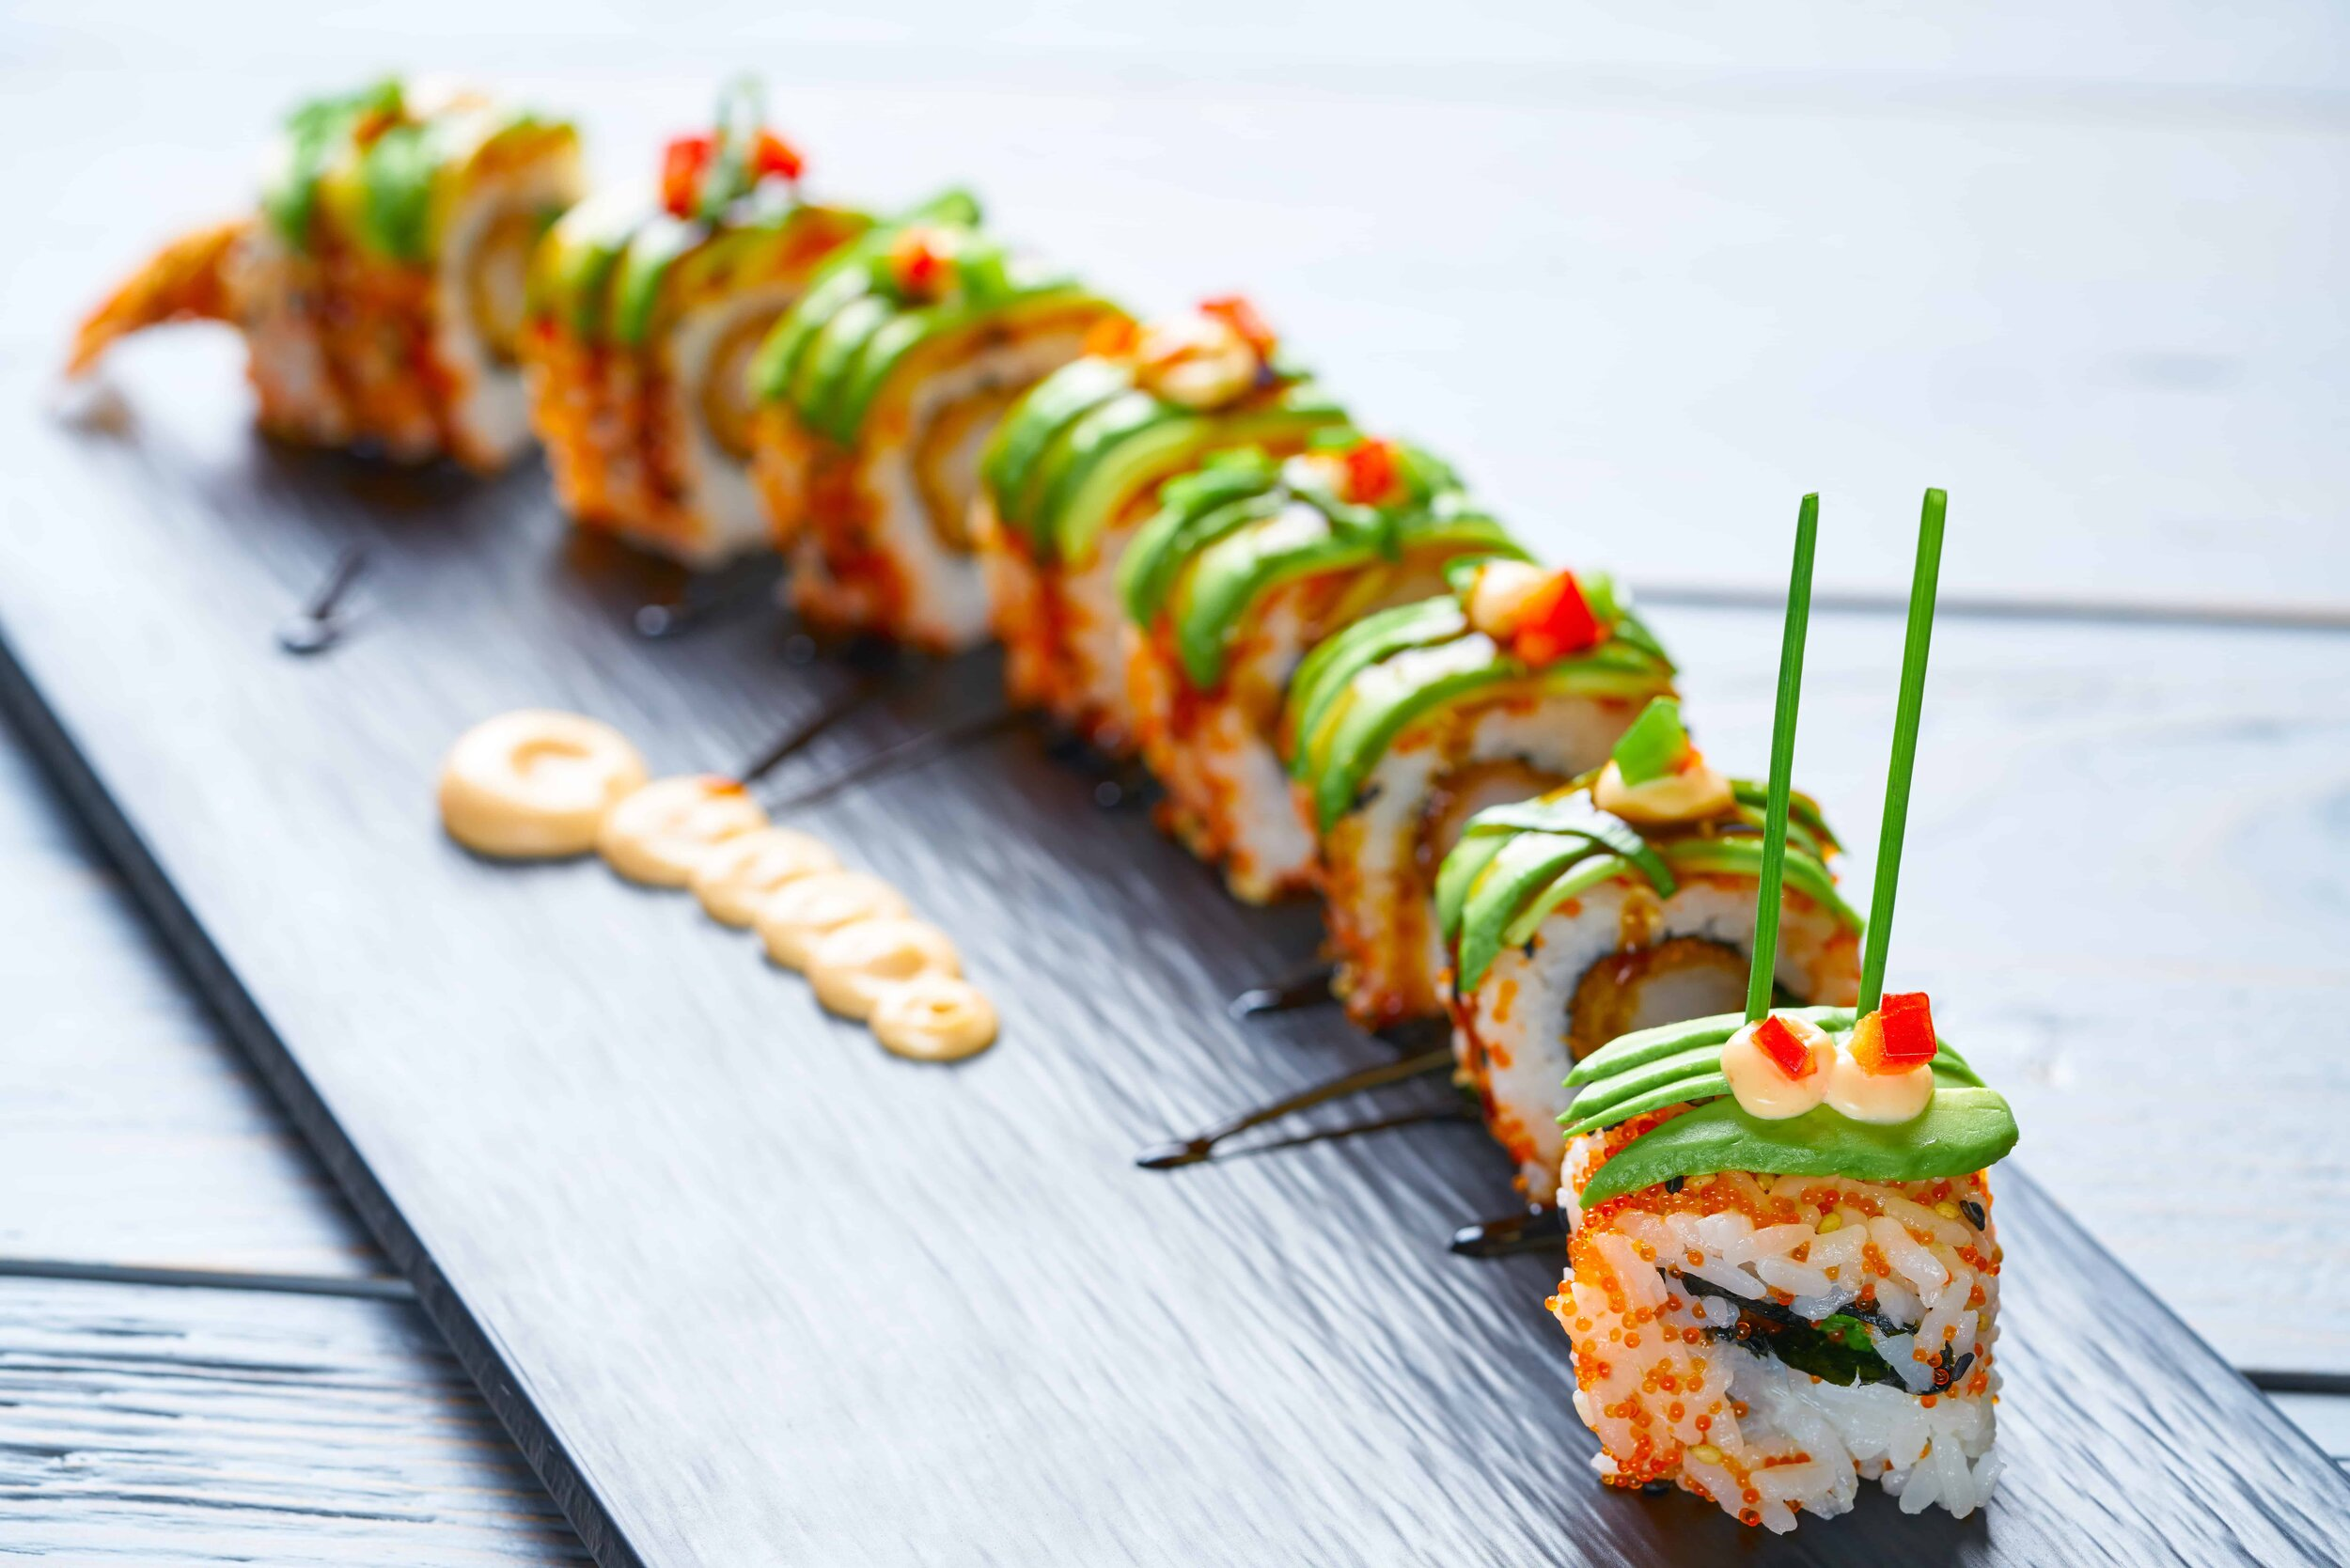 Are Sushi Rolls Healthy? (11 Sushi Rolls For Weight Loss)